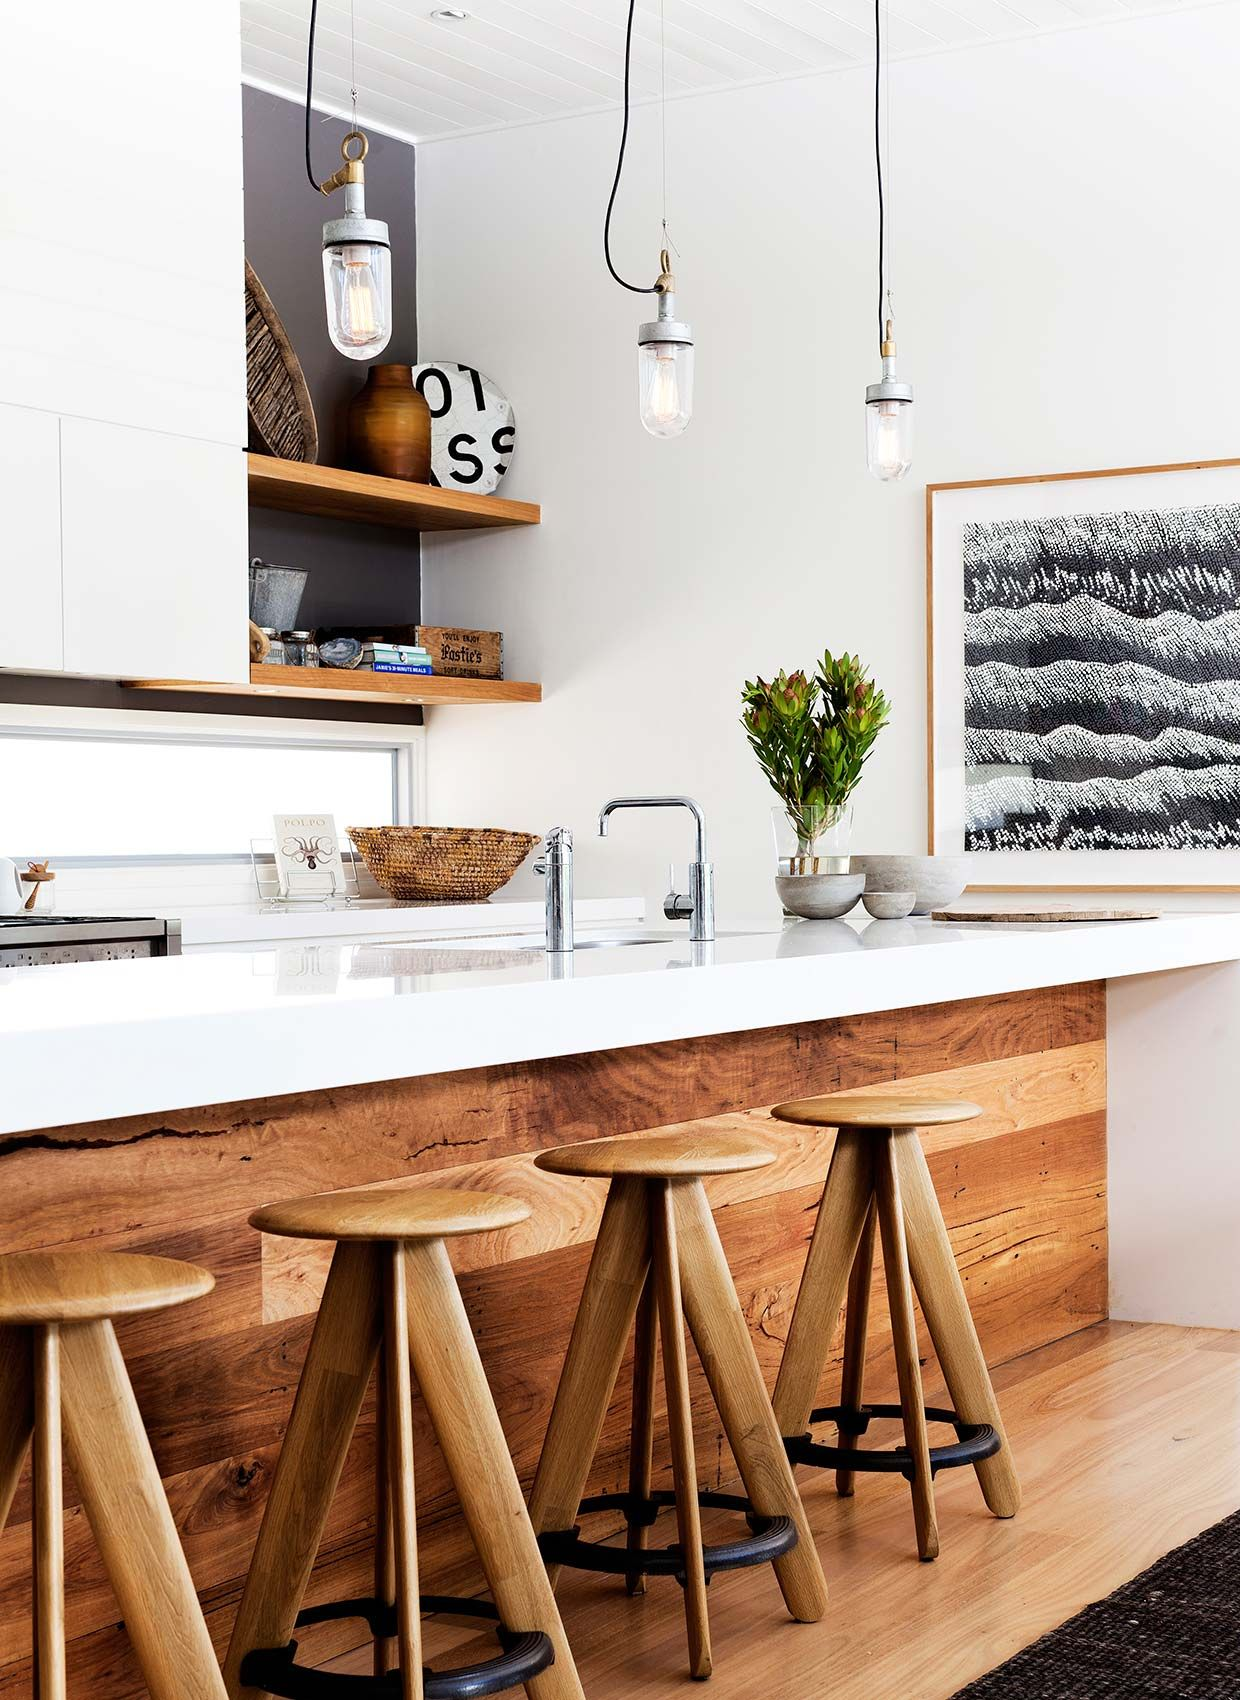 When it es to kitchen design there are a few trends that are